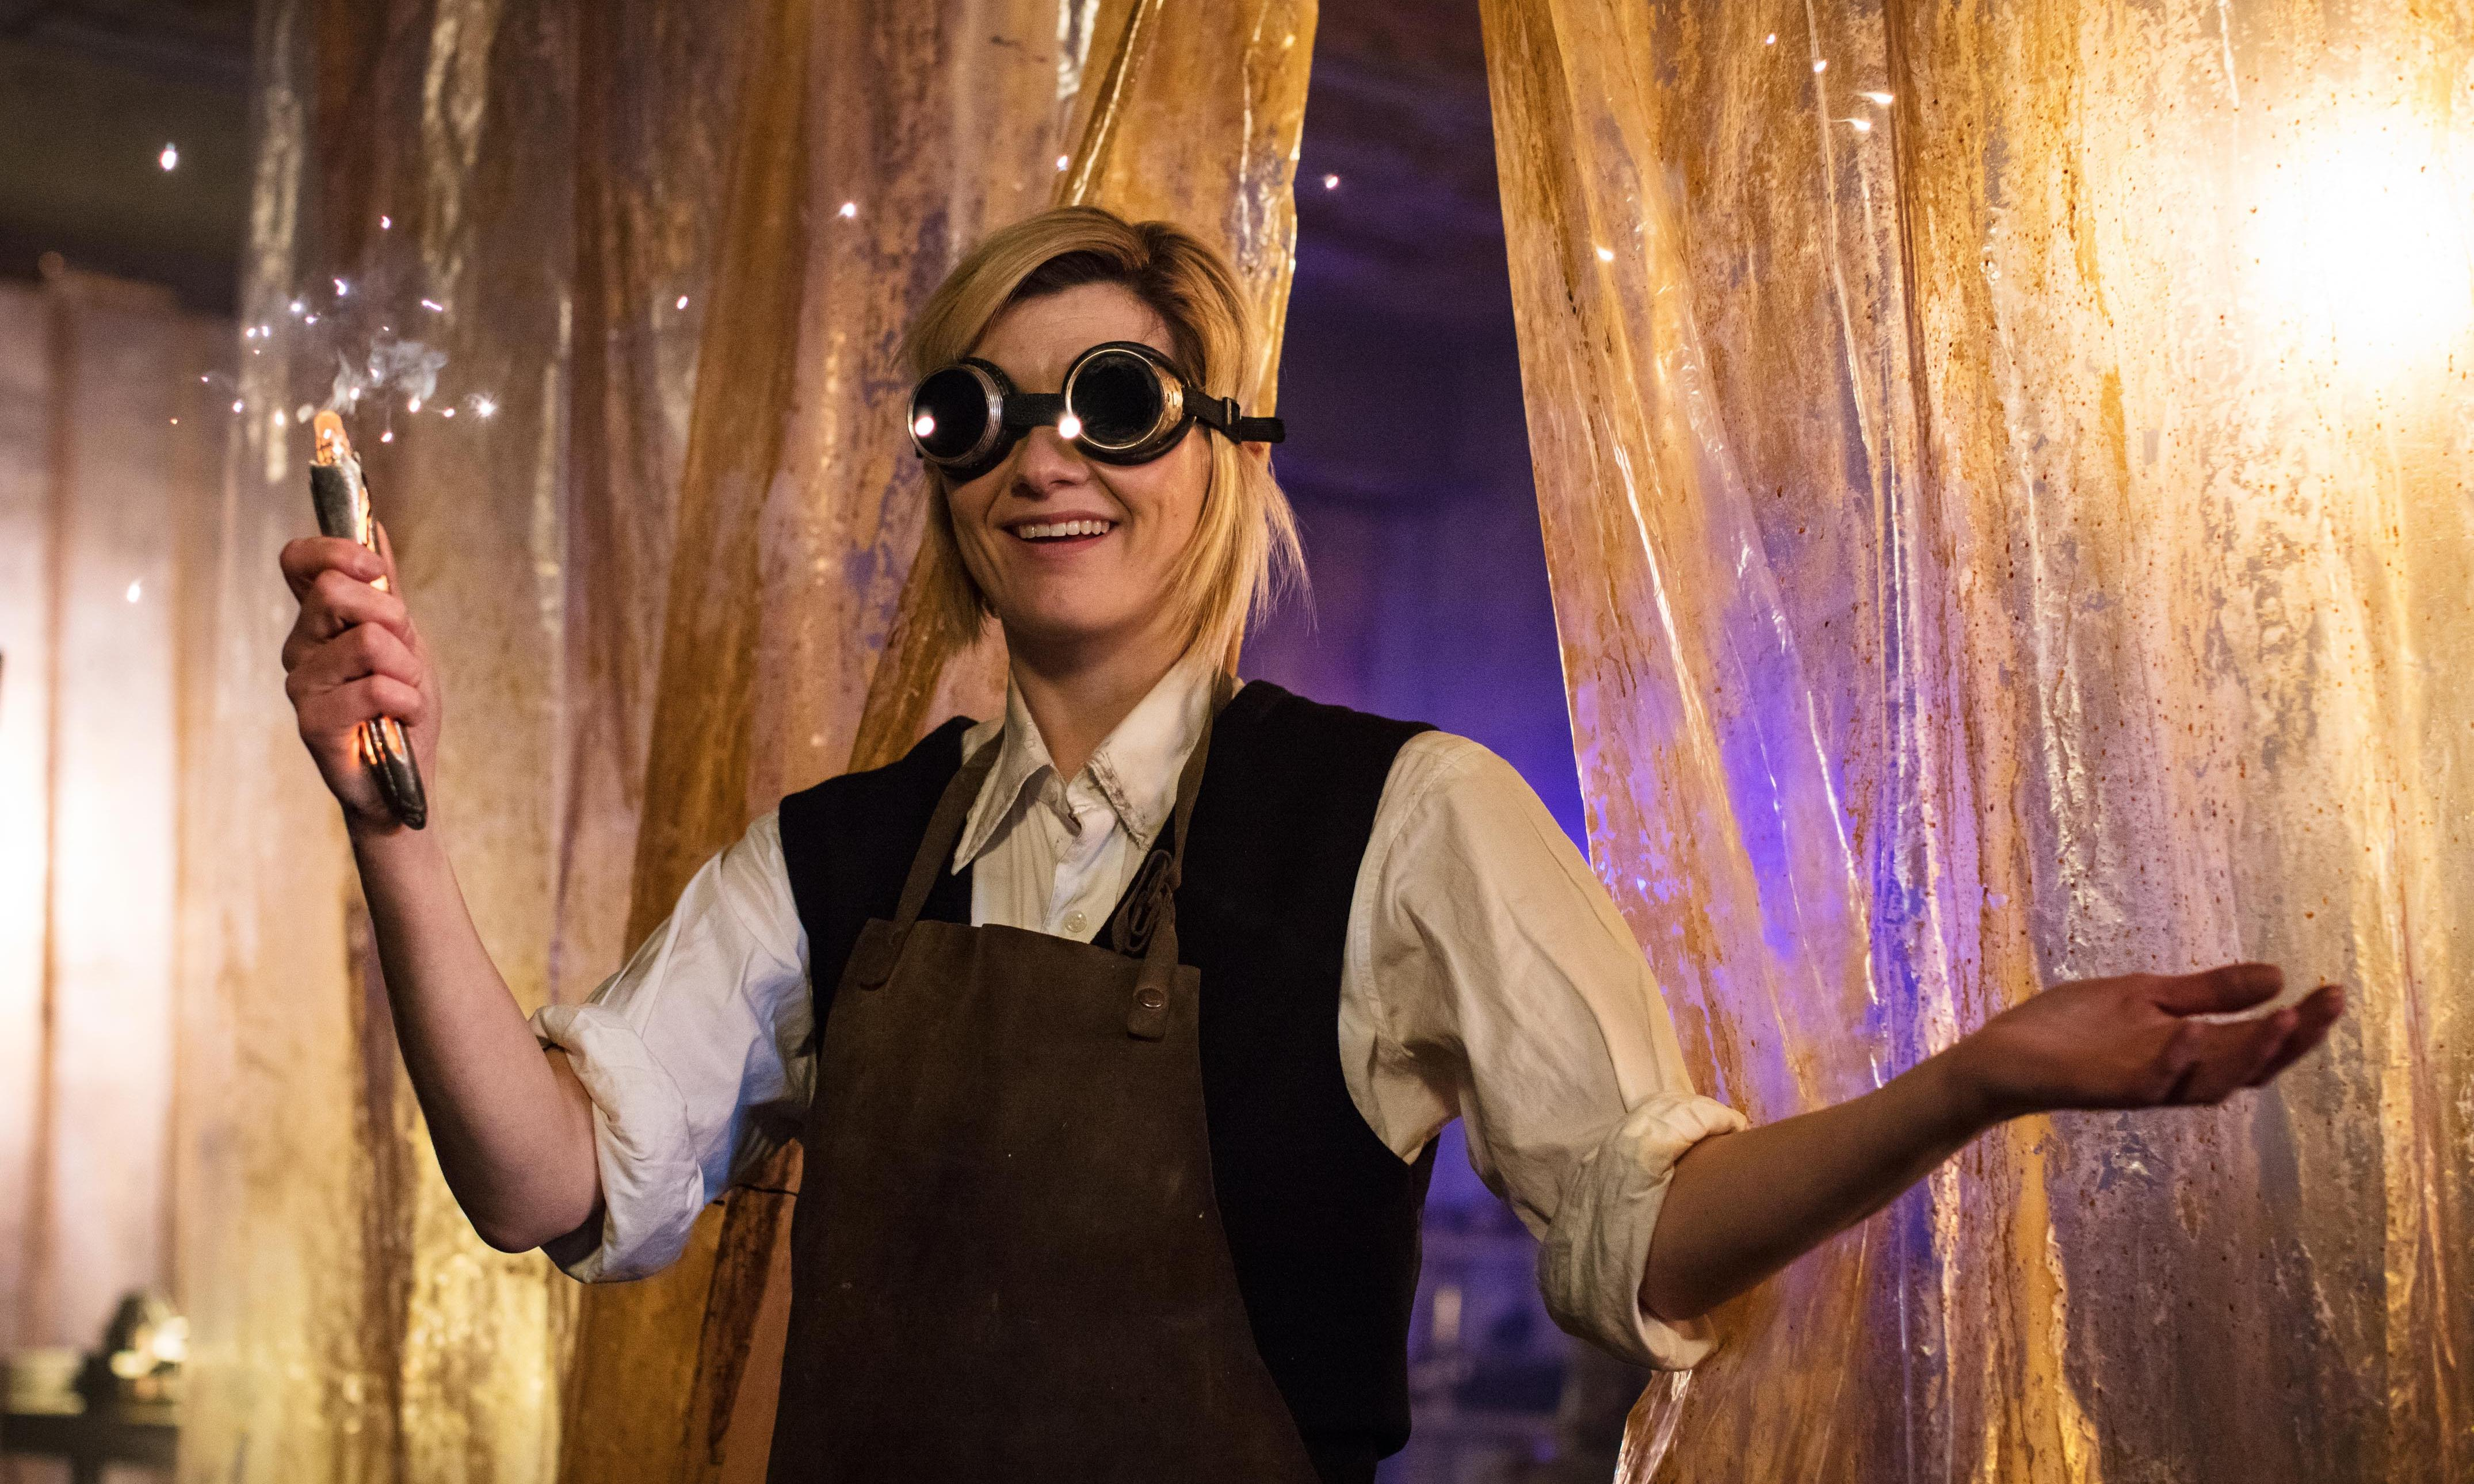 'Best of all, Whittaker is hilarious!': your verdict on the new Doctor Who